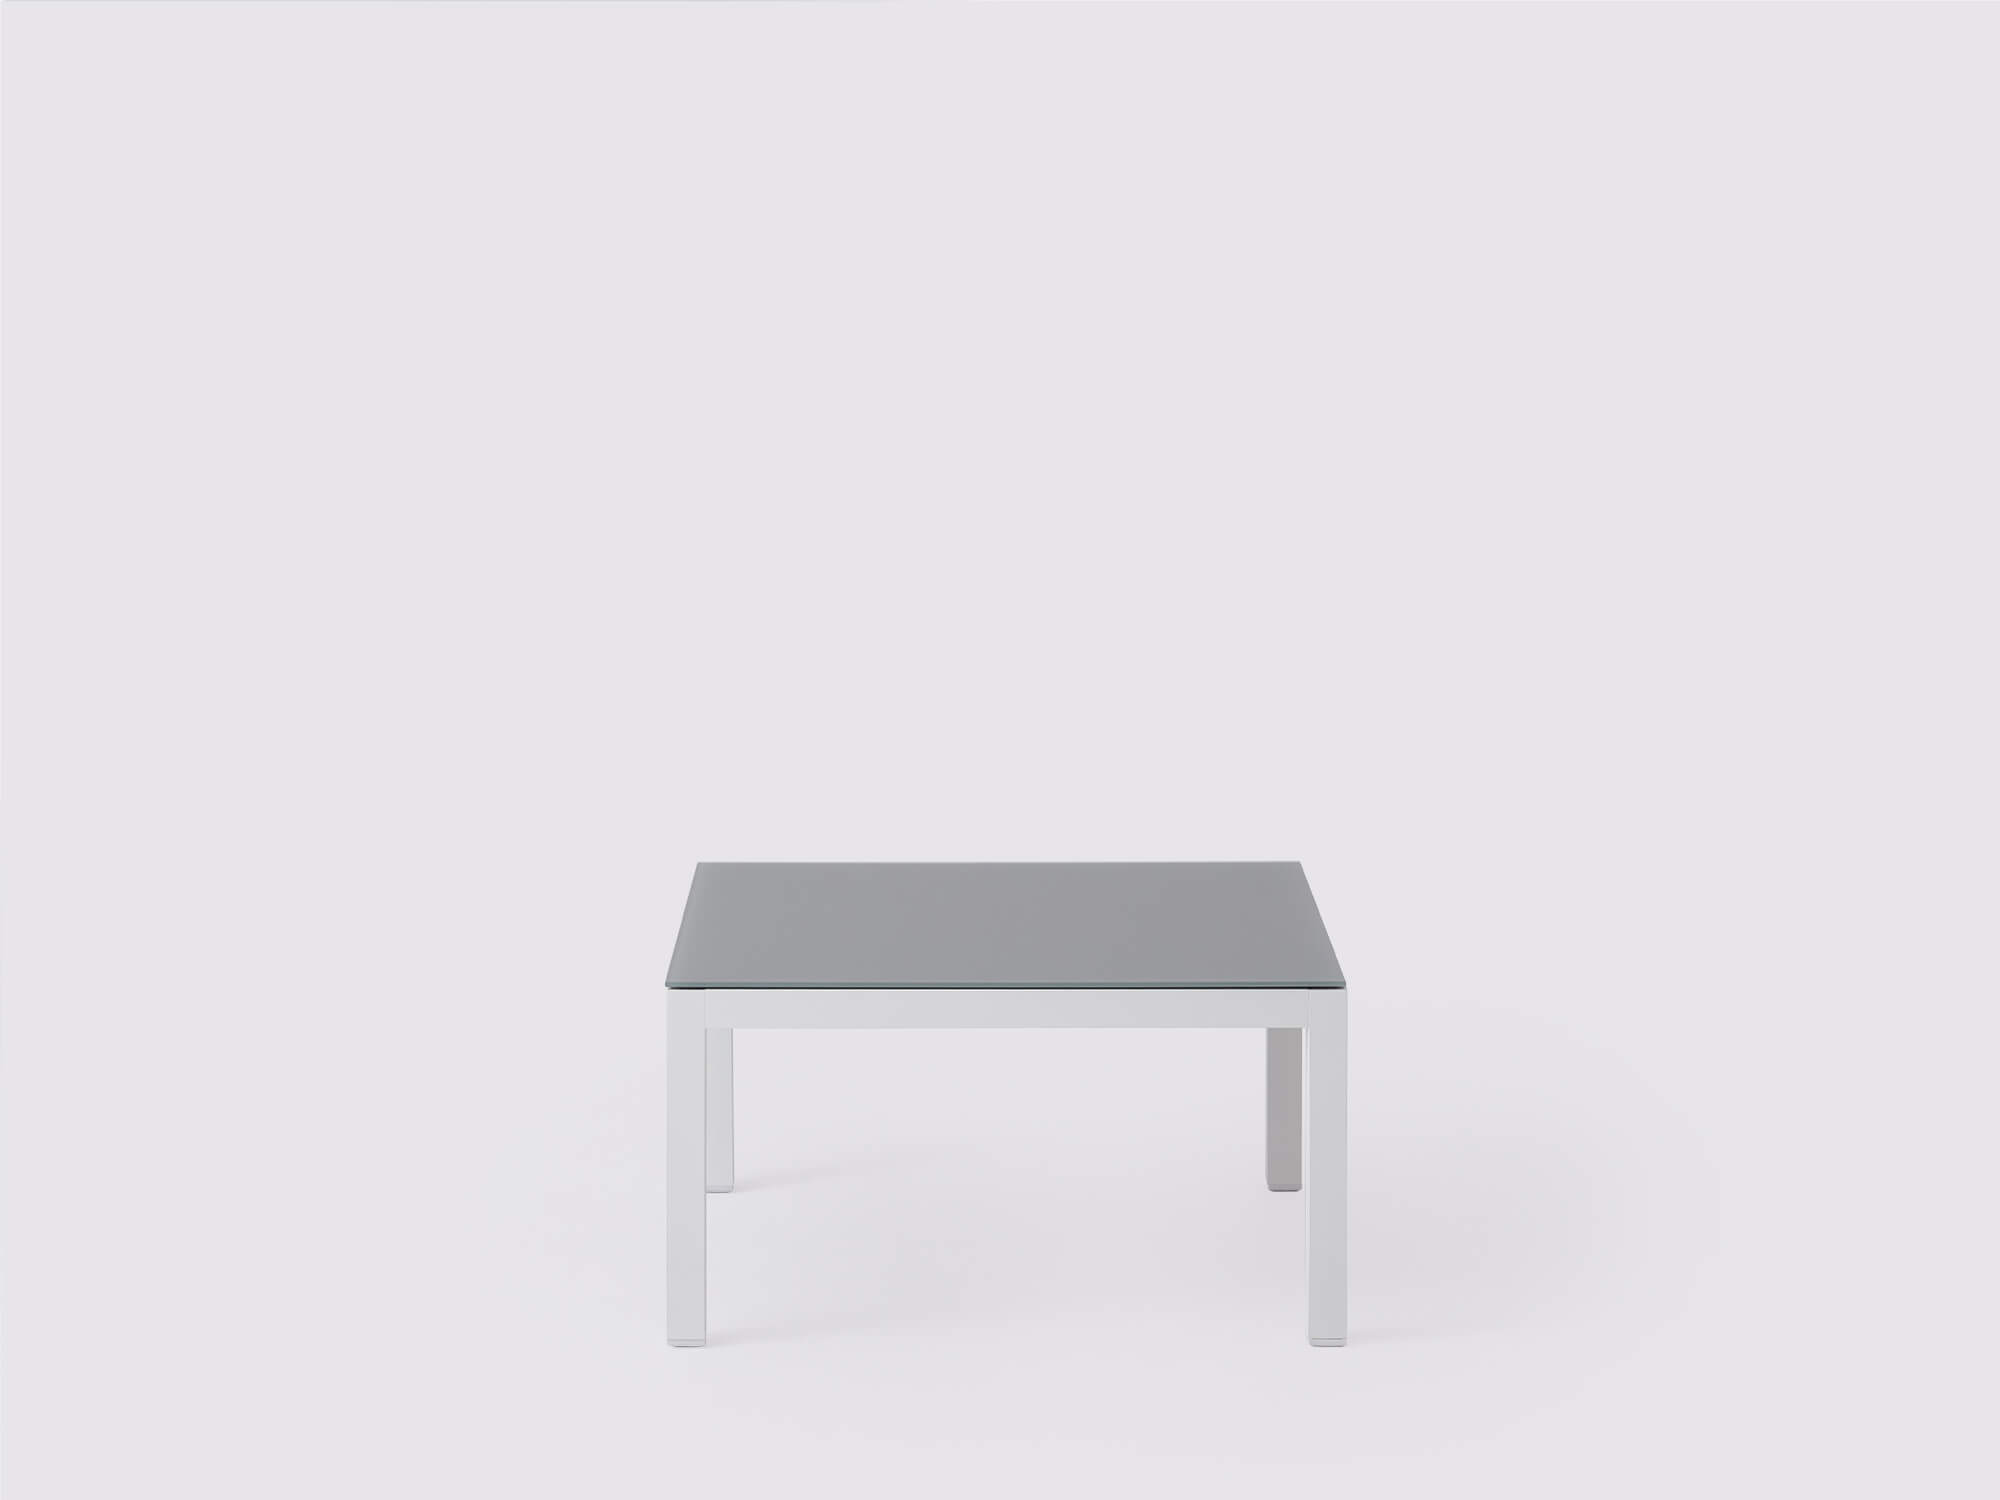 Eq3 S Cape Outdoor Coffee Table Outdoor Furniture [ 1500 x 2000 Pixel ]